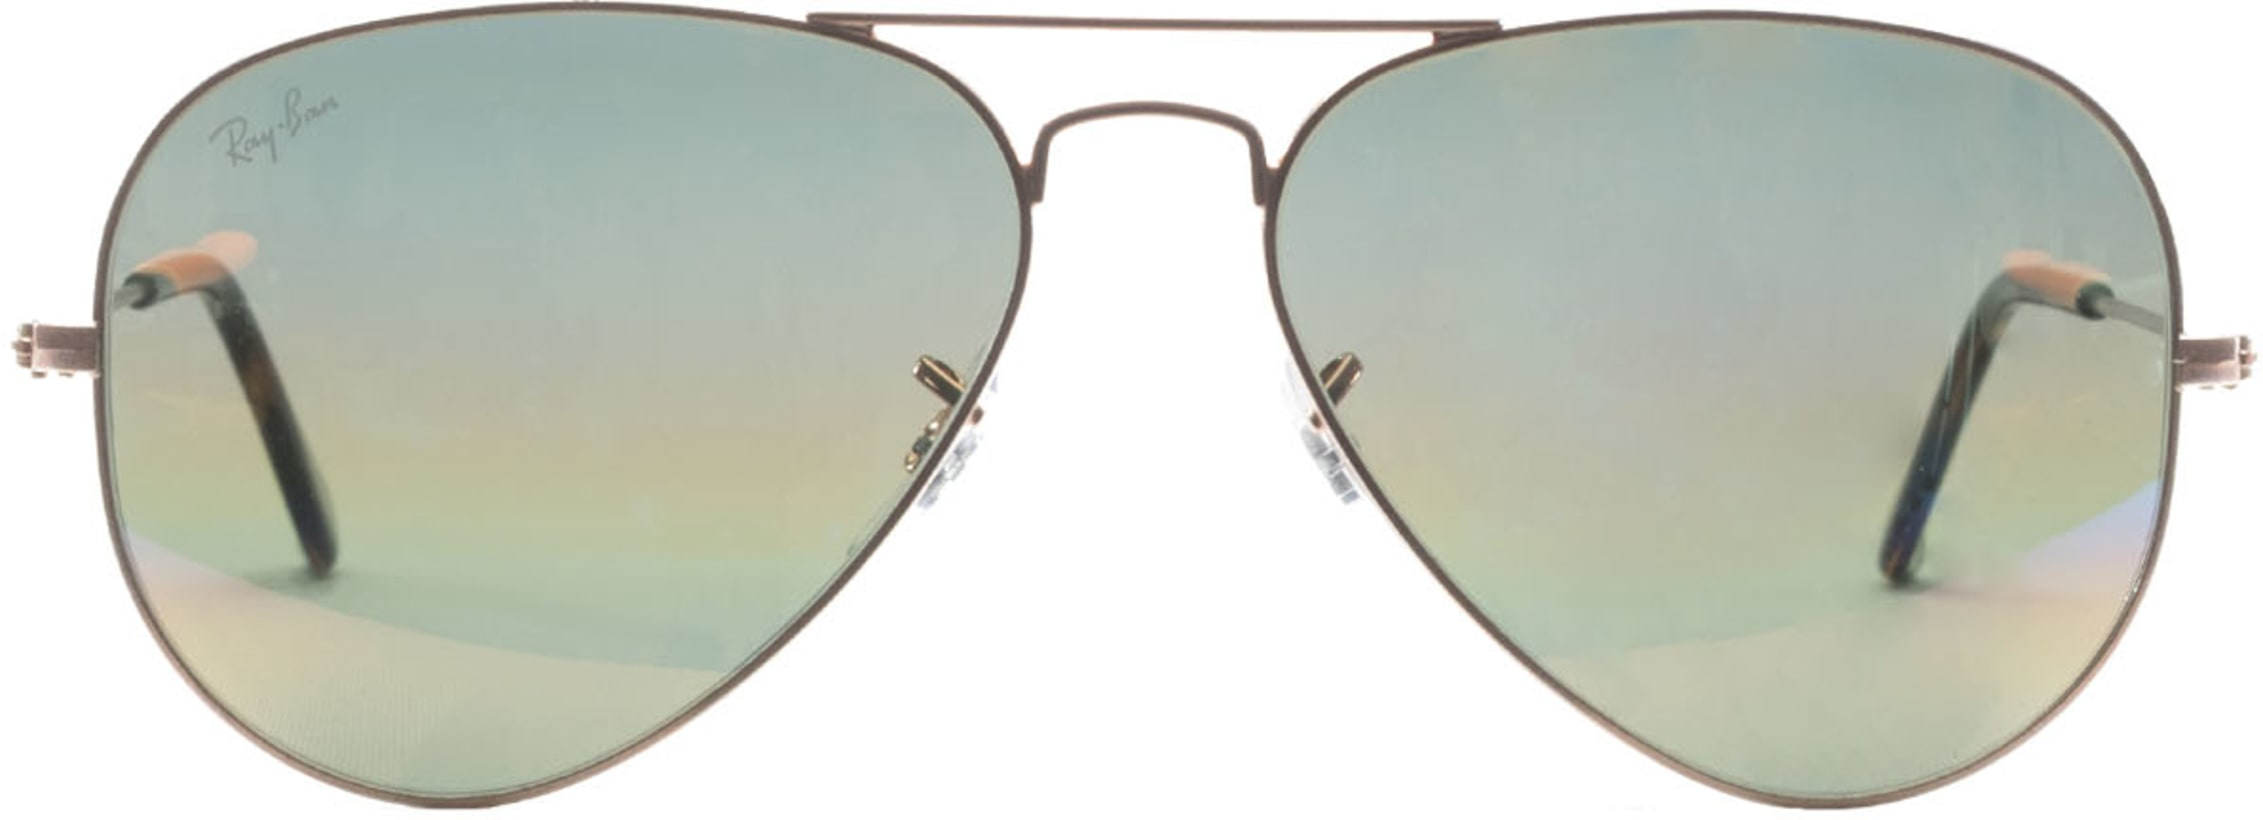 9775ee2008 Ray-Ban. Aviator Mineral Flash Sunglasses - Bronze Copper Gold Rainbow Flash